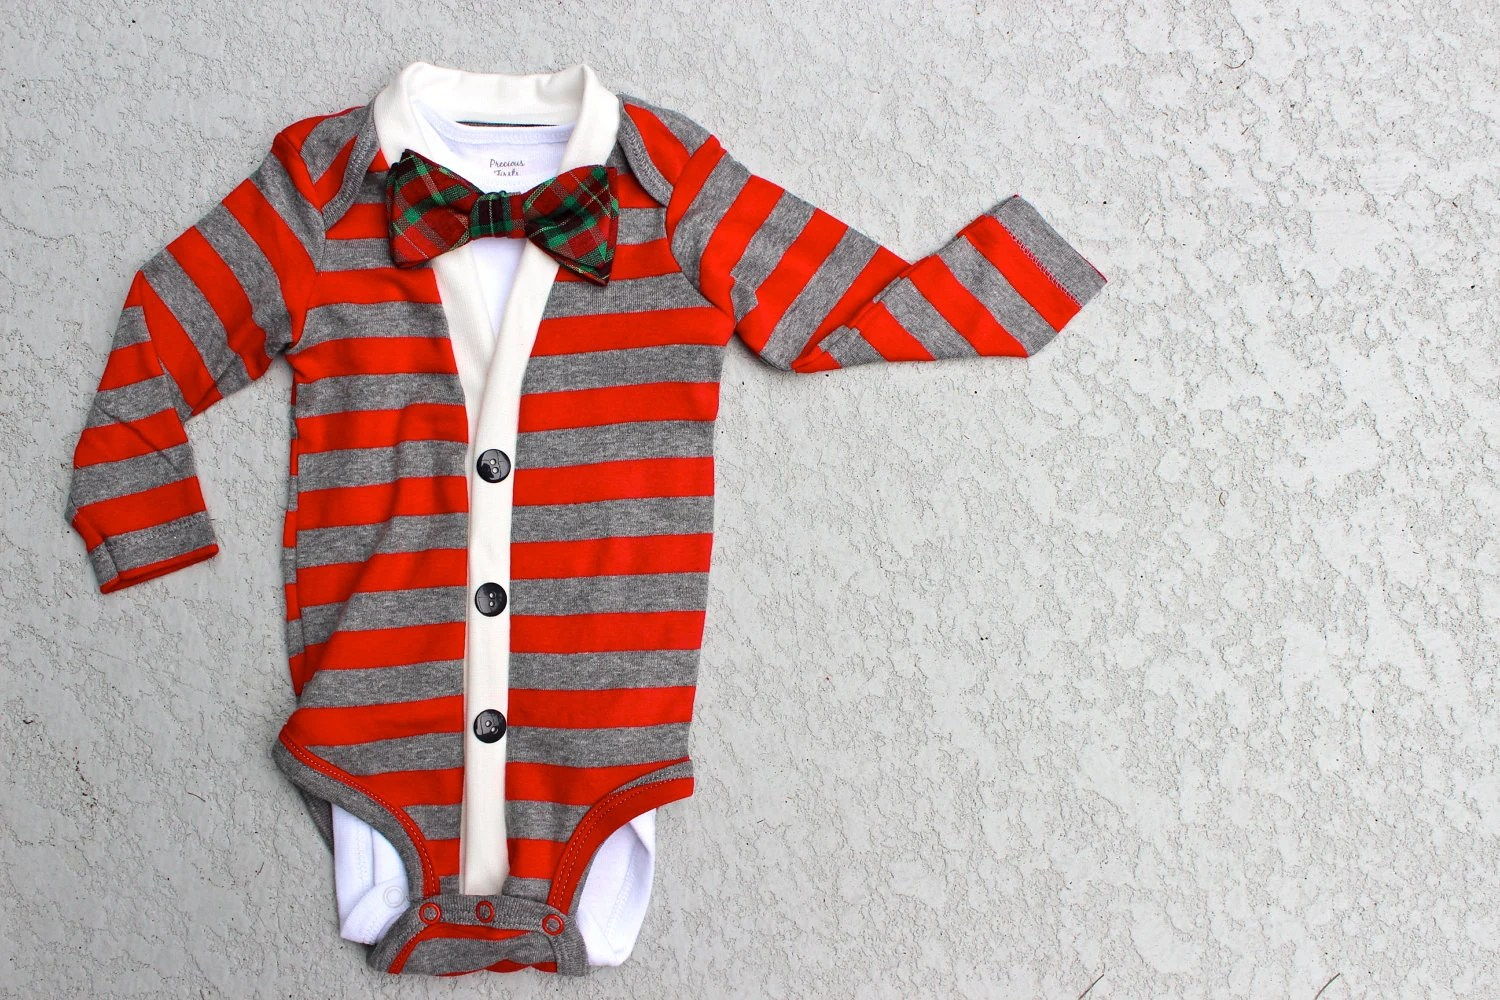 Cardigan and Bow Tie Onesie Set - Red Stripes with Plaid Bow Tie - Christmas